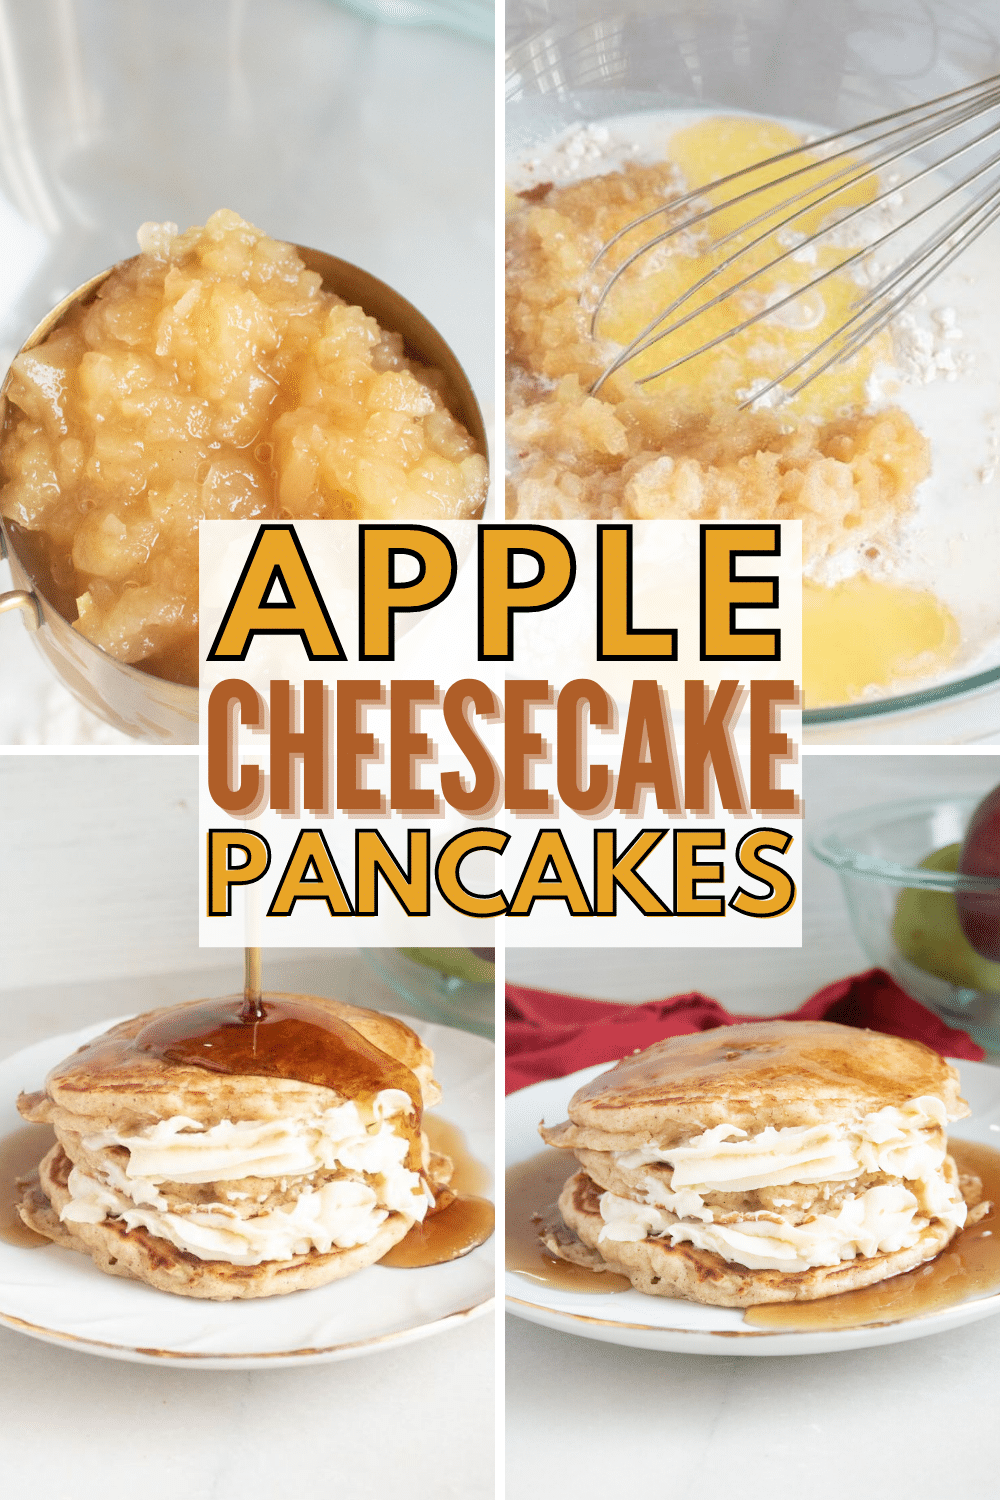 Apple Cheesecake Pancakes are a delicious breakfast treat. Cream cheese filling sandwiched between pancakes made with applesauce is delightful. #pancakes #breakfast #breakfastrecipes via @wondermomwannab